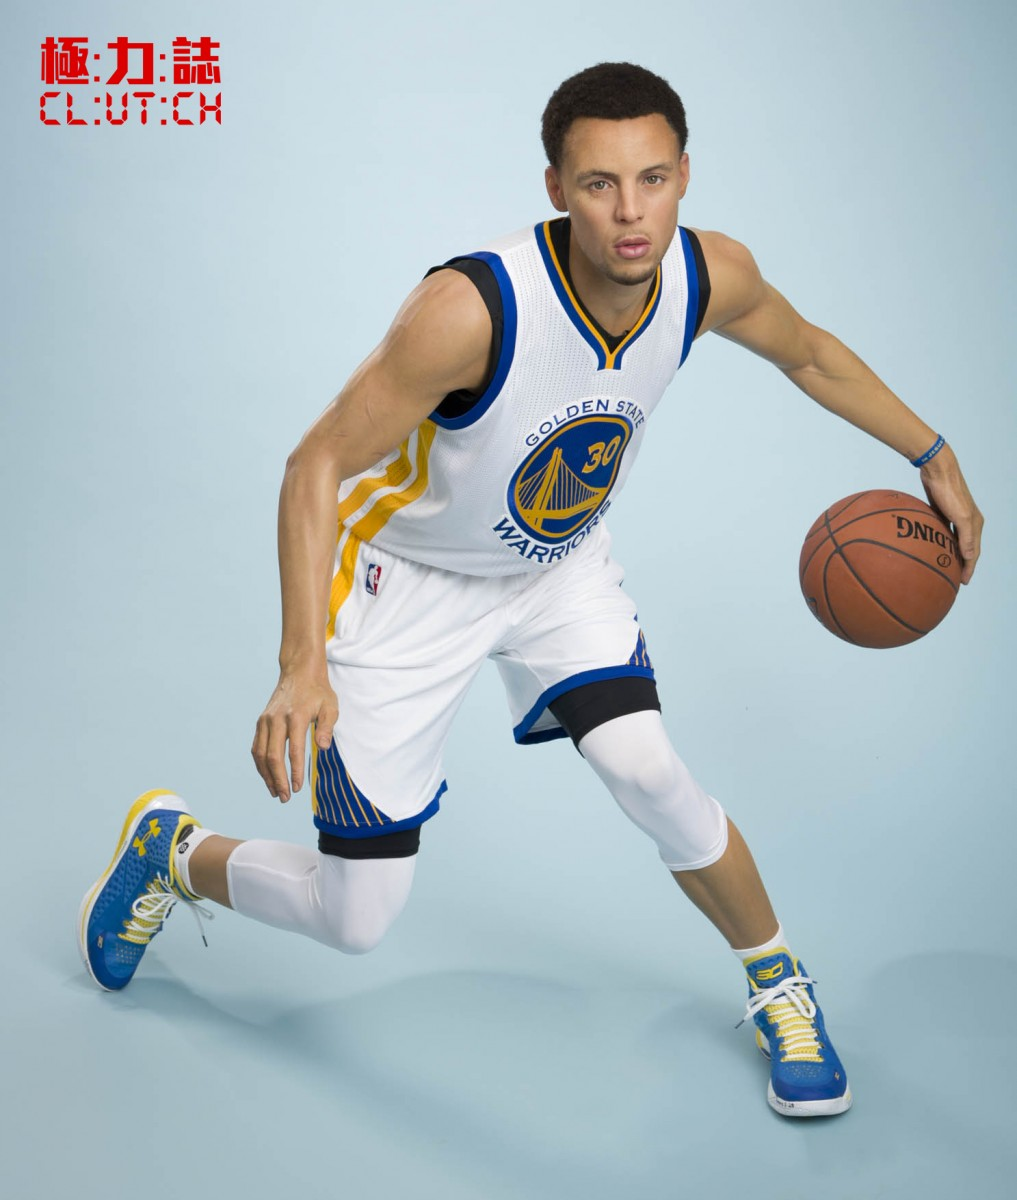 Stephen Curry 3-clutch